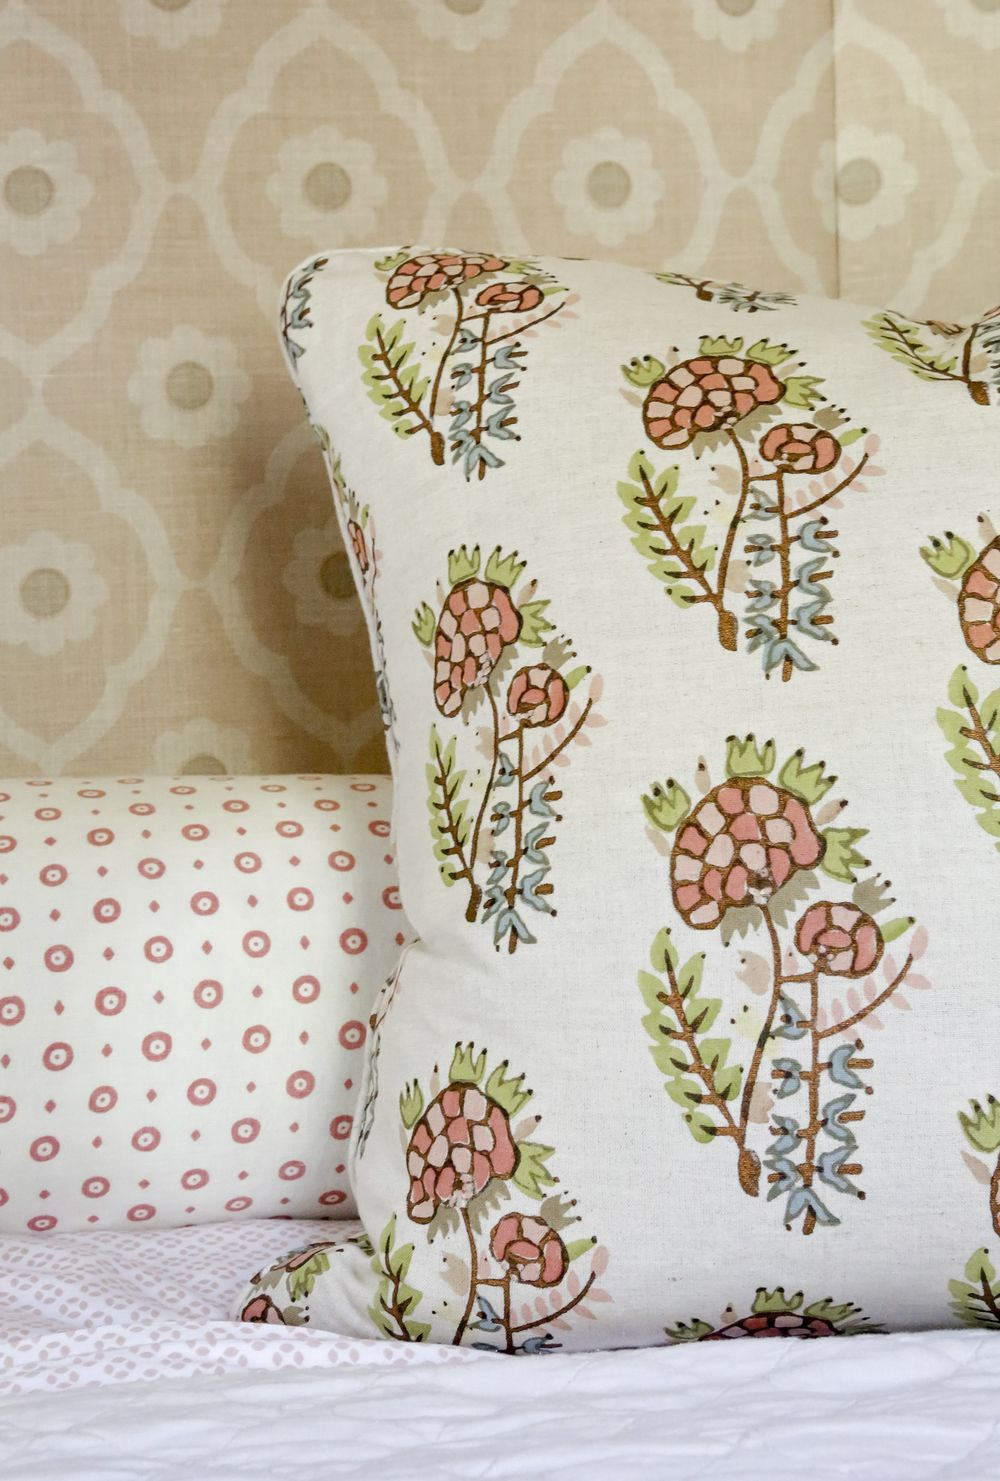 Little girls room pillow details rachel halvorson designs photo by